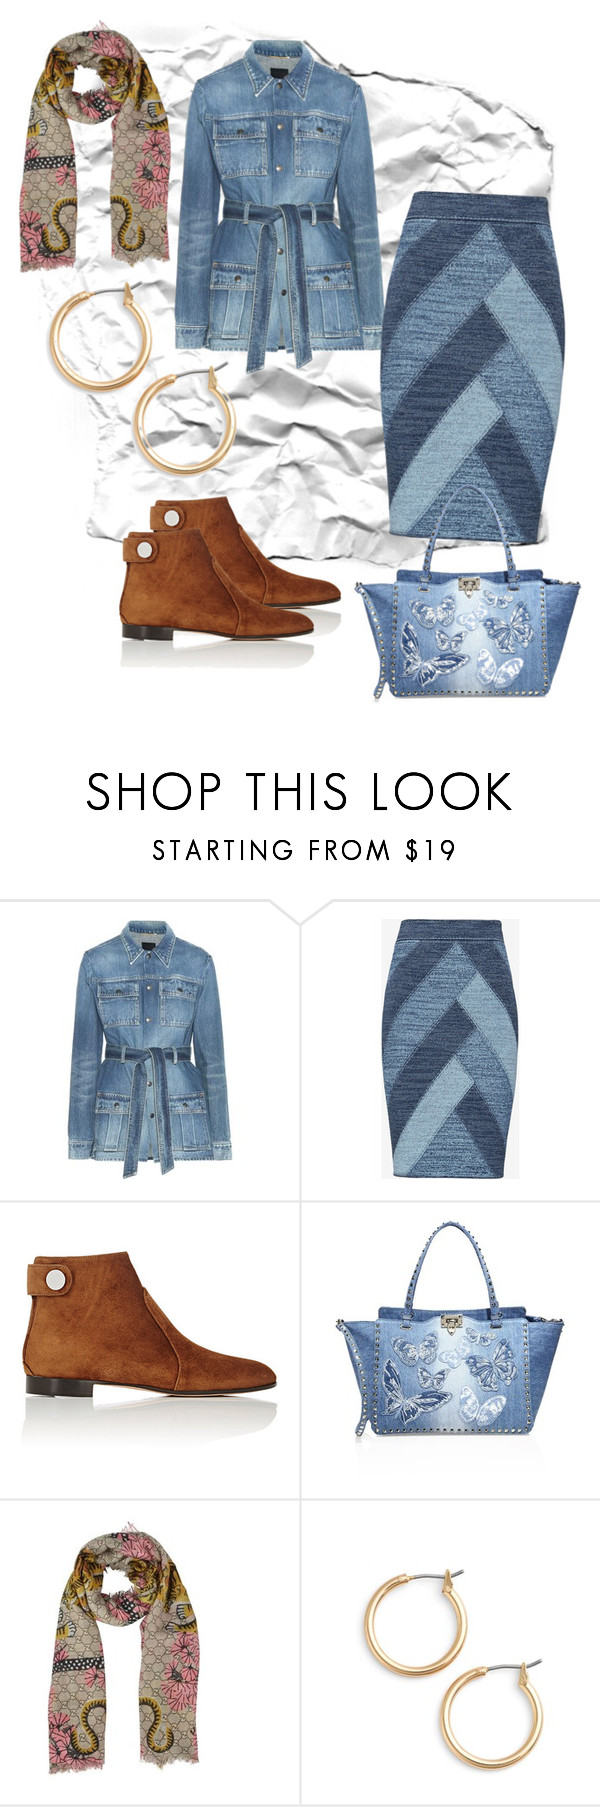 """Untitled #430"" by aweyn ❤ liked on Polyvore featuring Yves Saint Laurent, BCBGMAXAZRIA, Gianvito Rossi, Valentino, Gucci and Nordstrom"